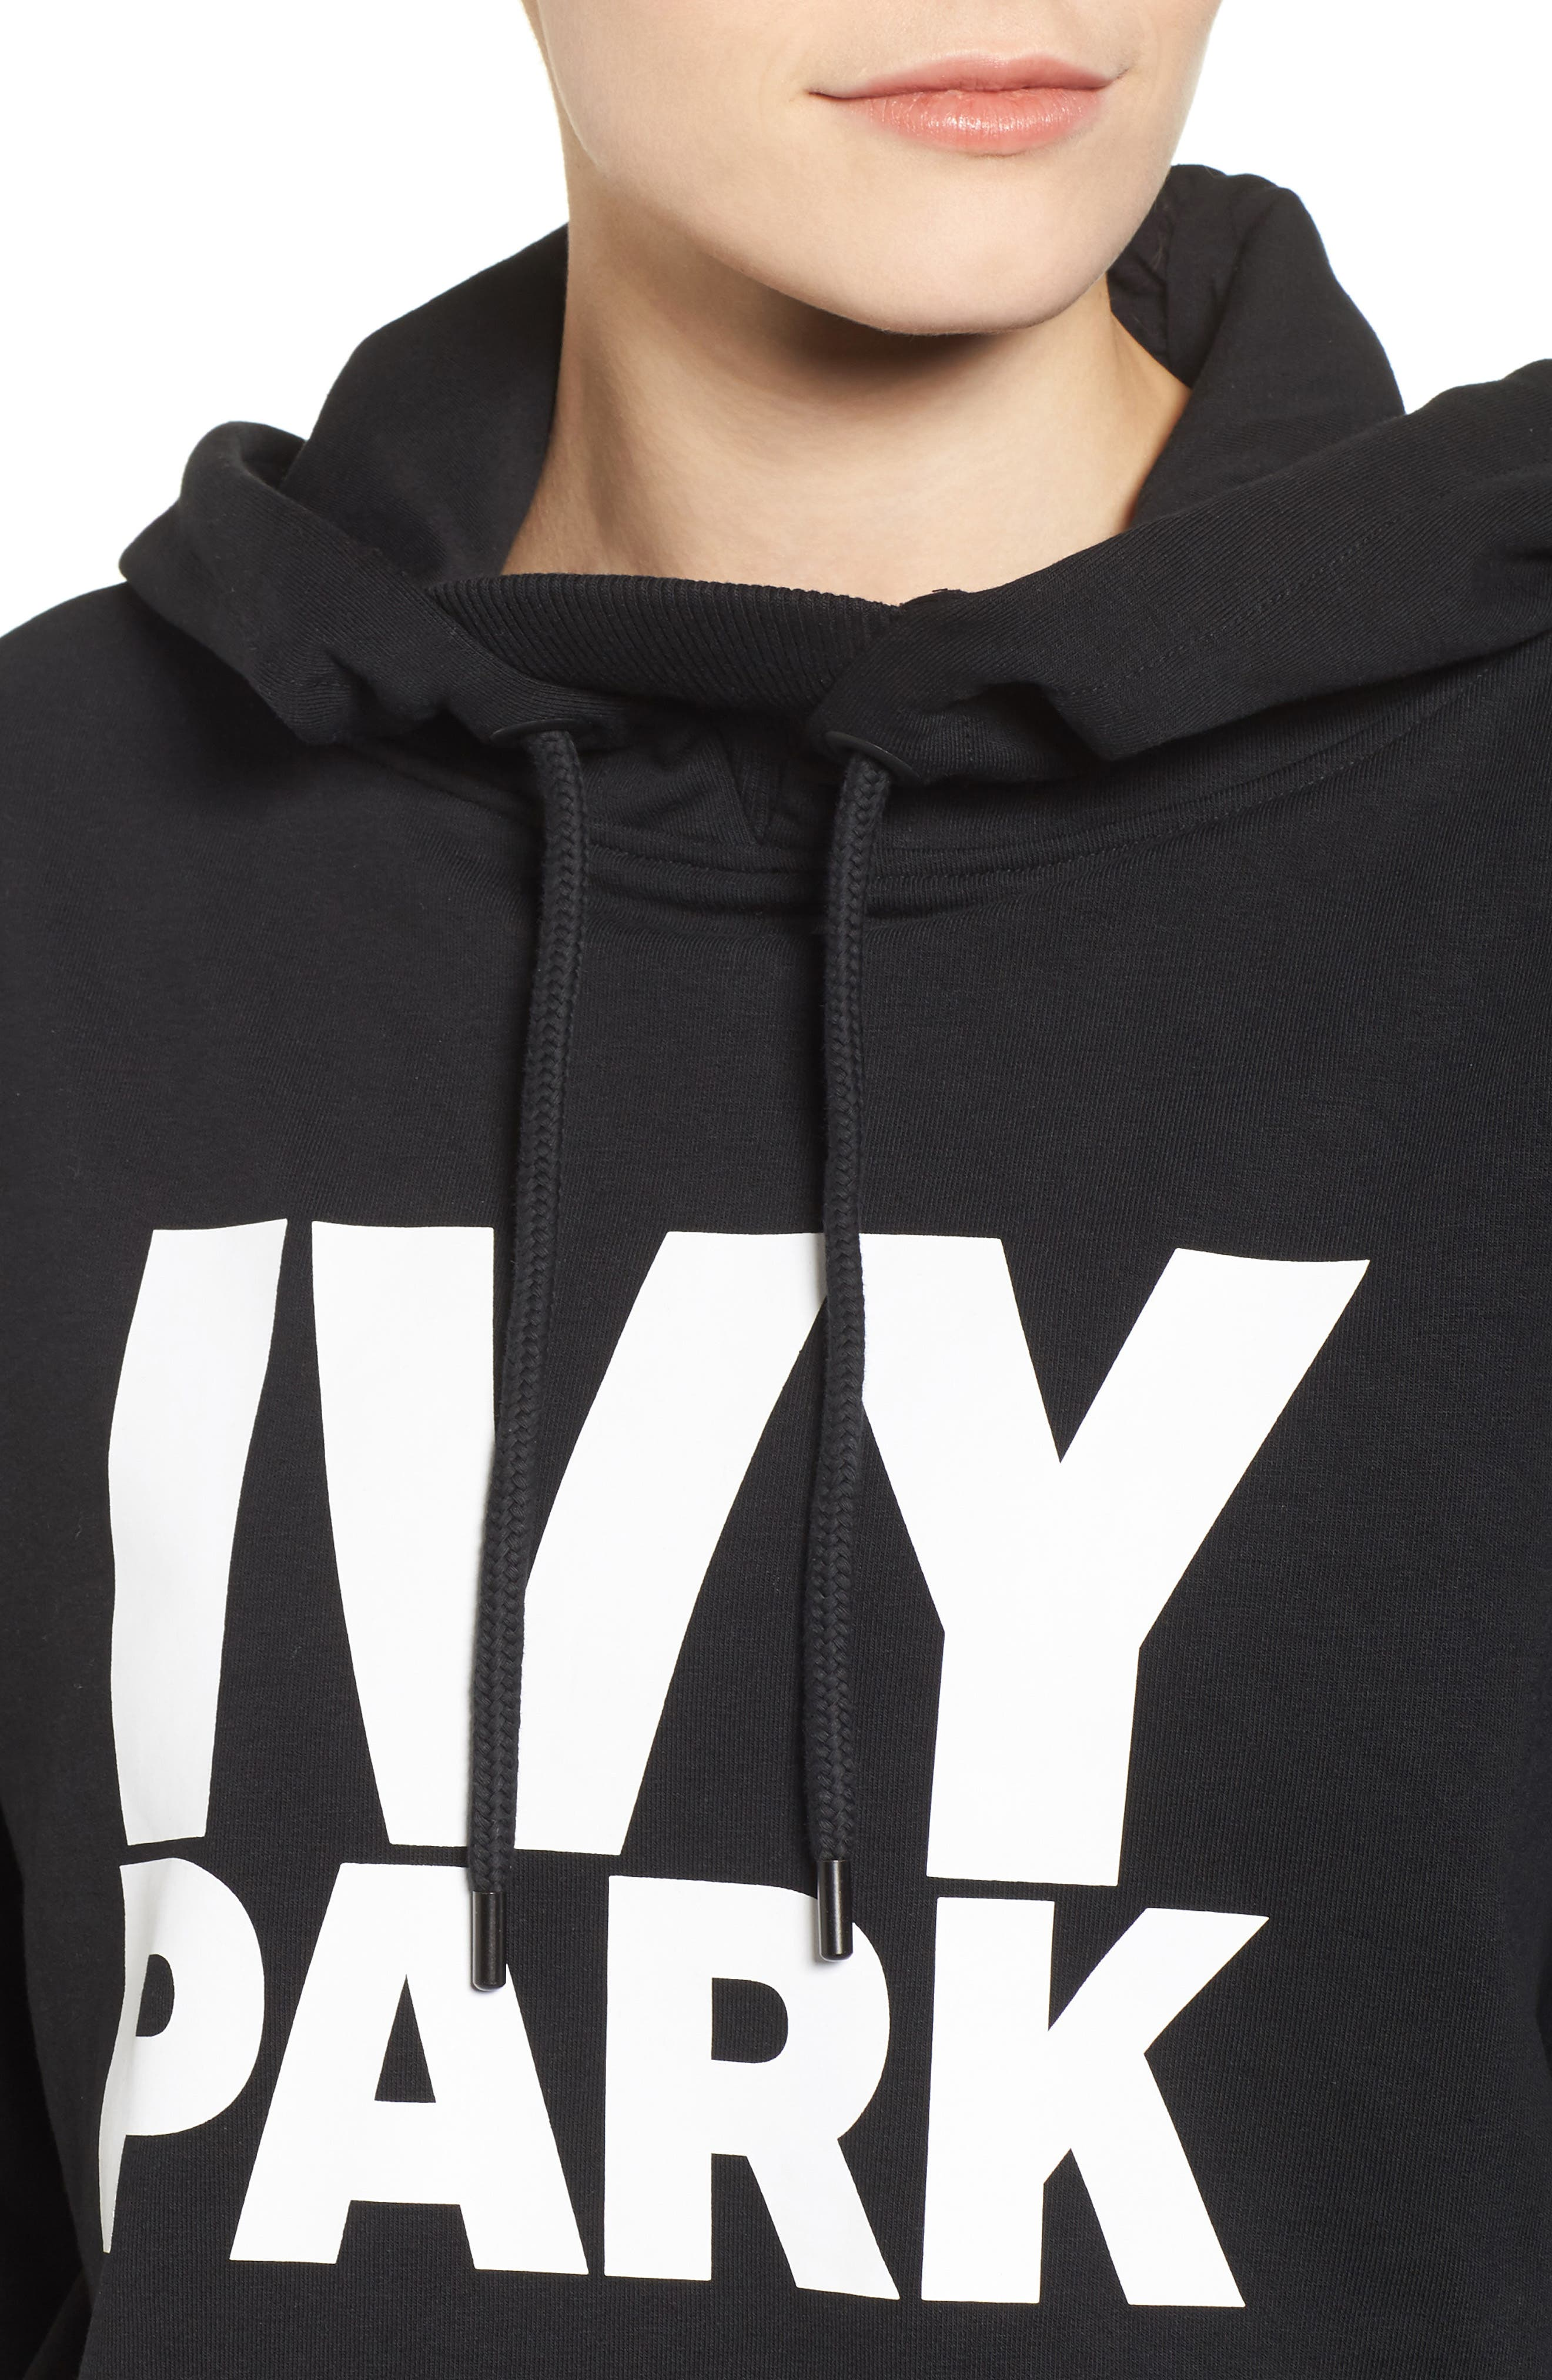 Logo Hoodie,                             Alternate thumbnail 4, color,                             Black